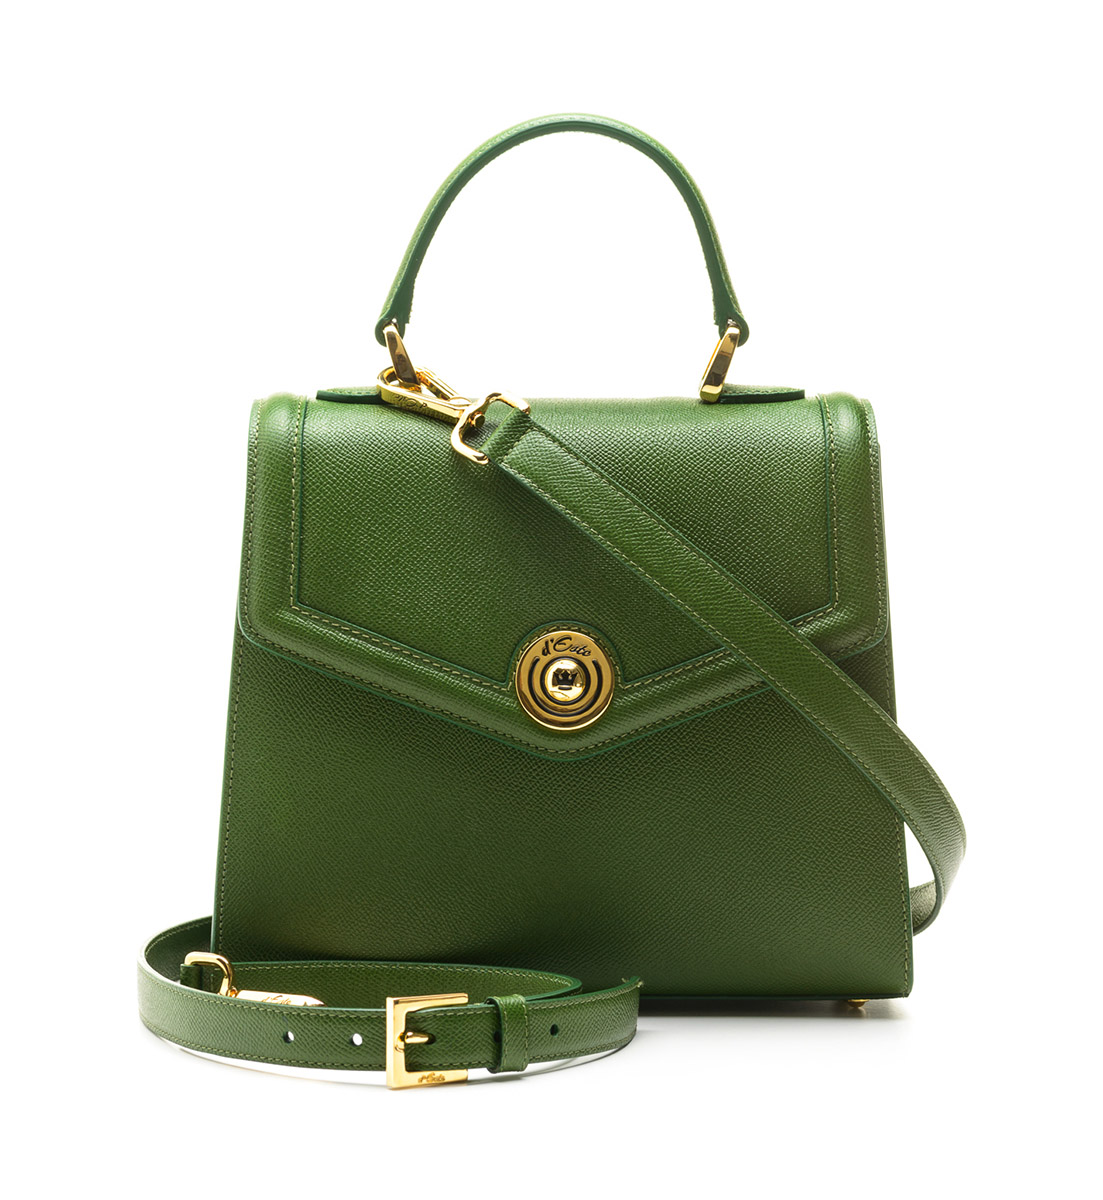 D'Este Monaco Green bag borse e-commerce still-life